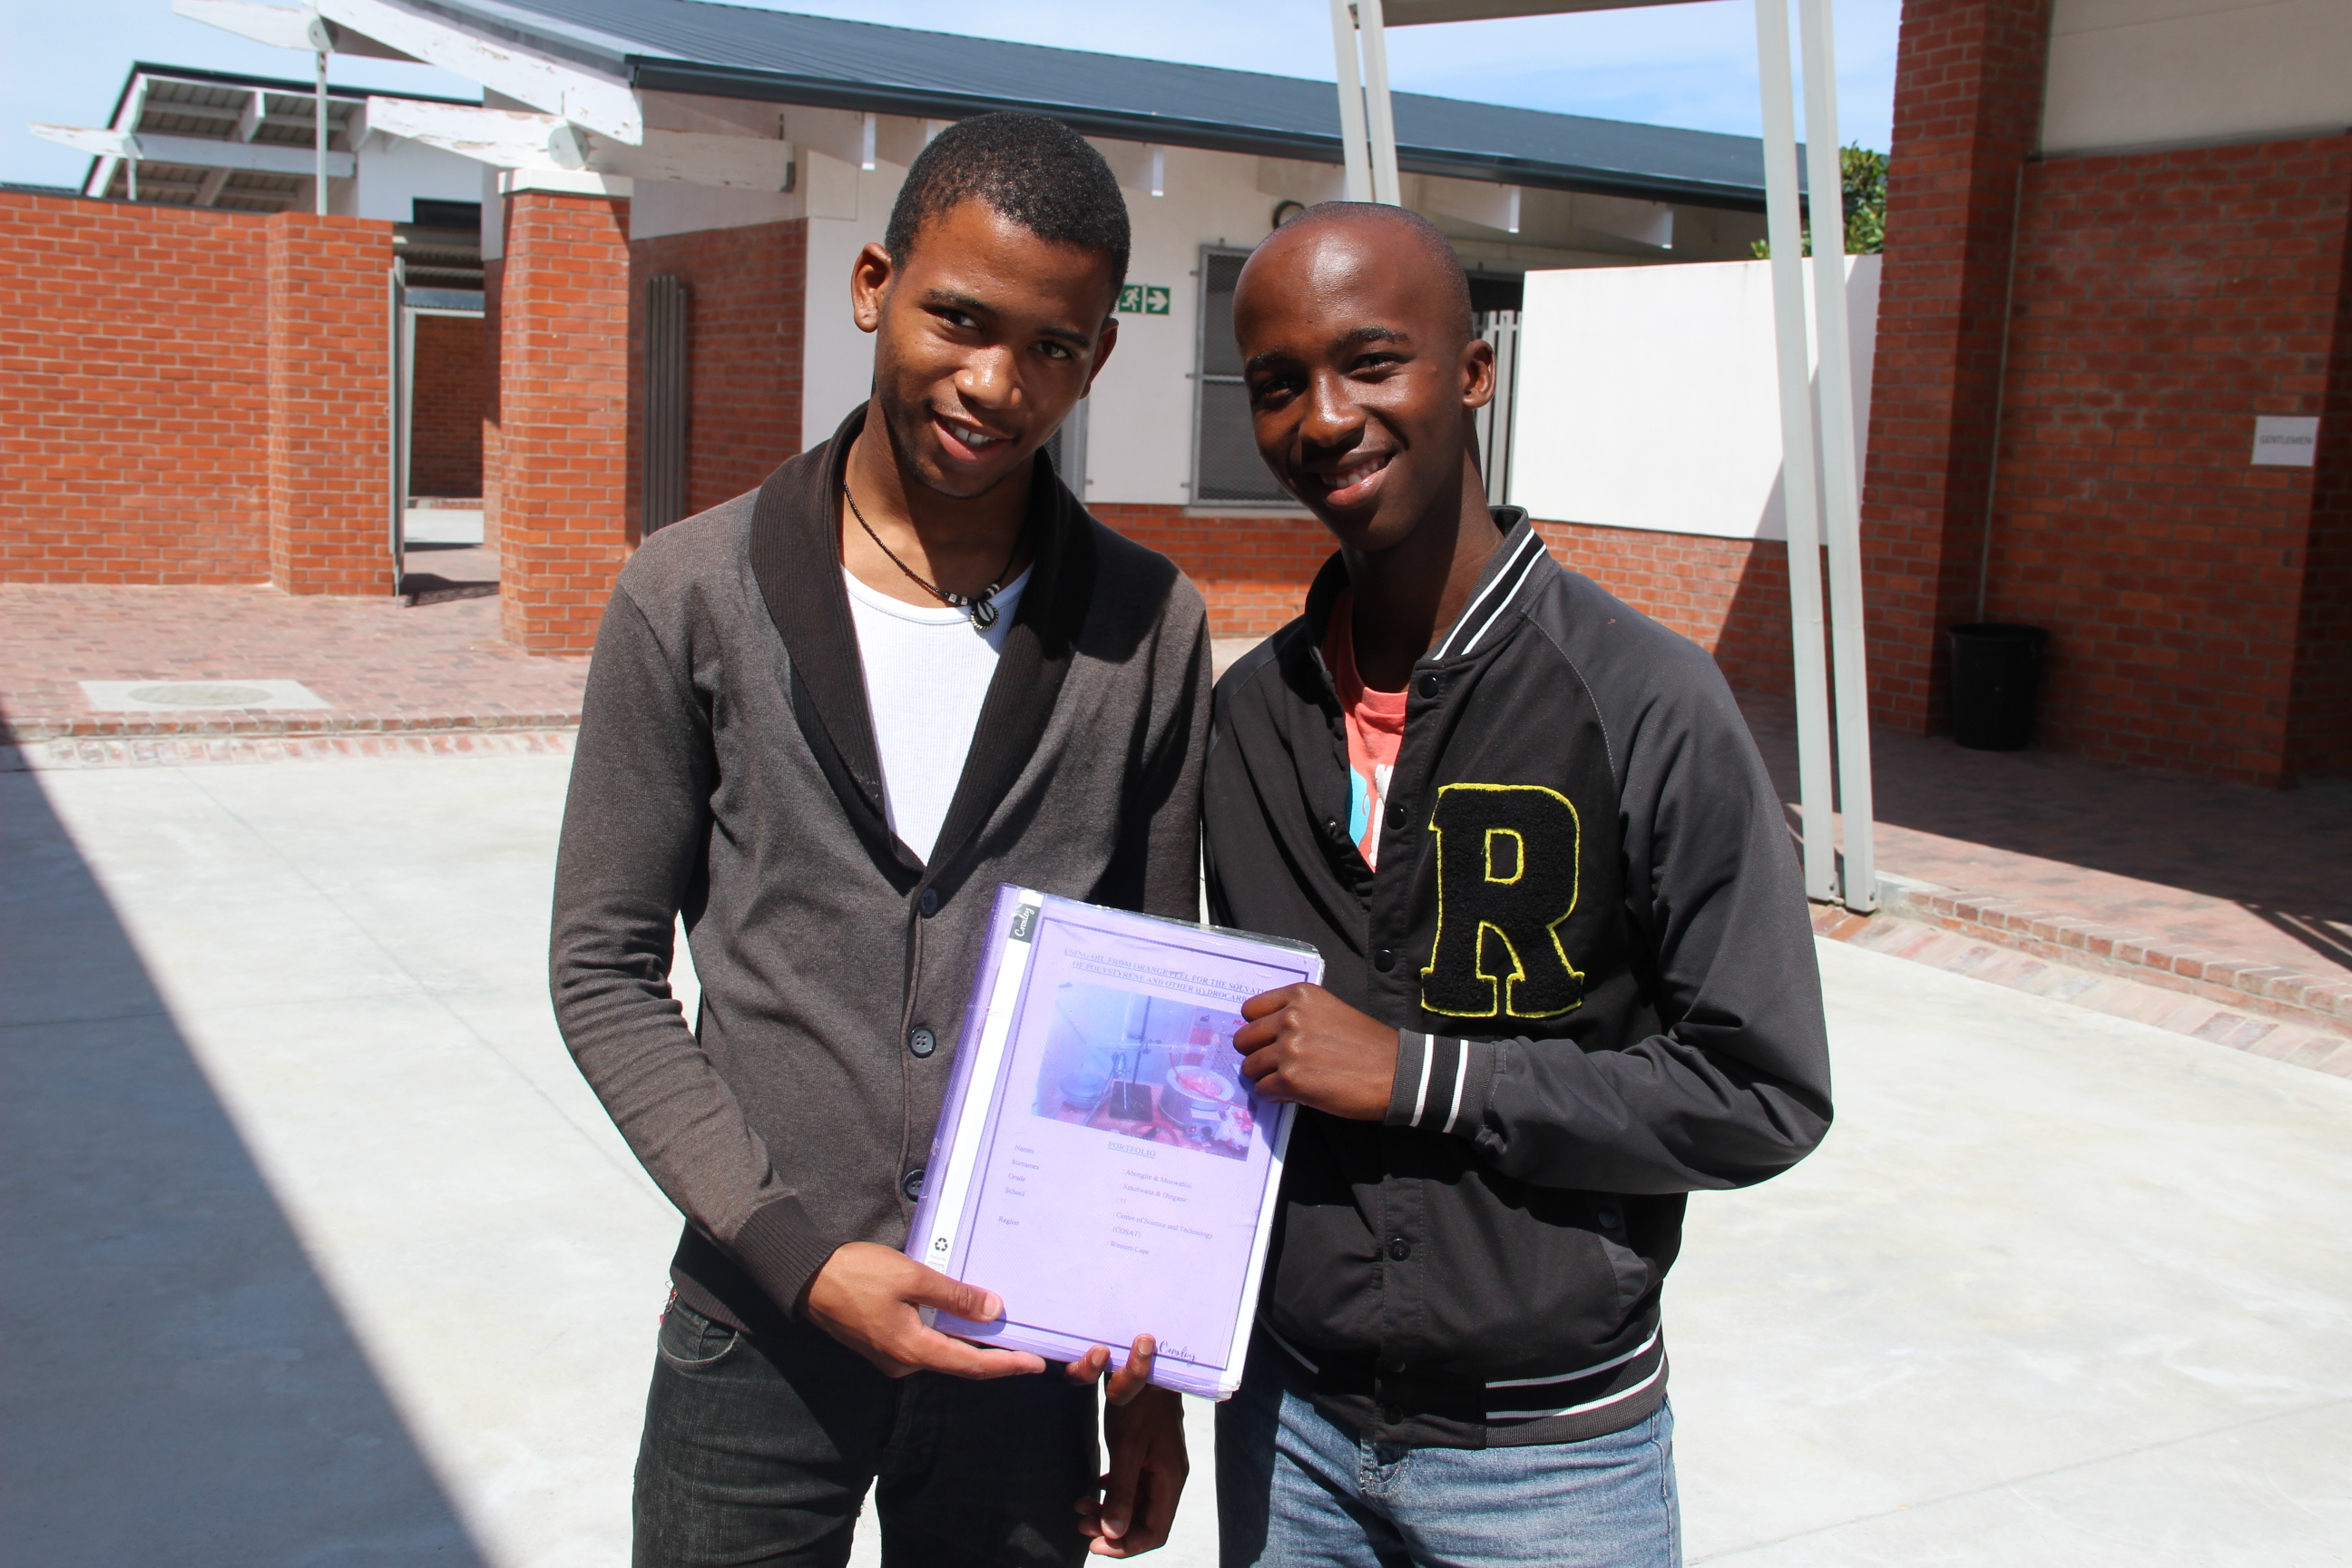 Abongile Xeketwana and Monwabisi Dingane with a summary of their chemistry experiment.